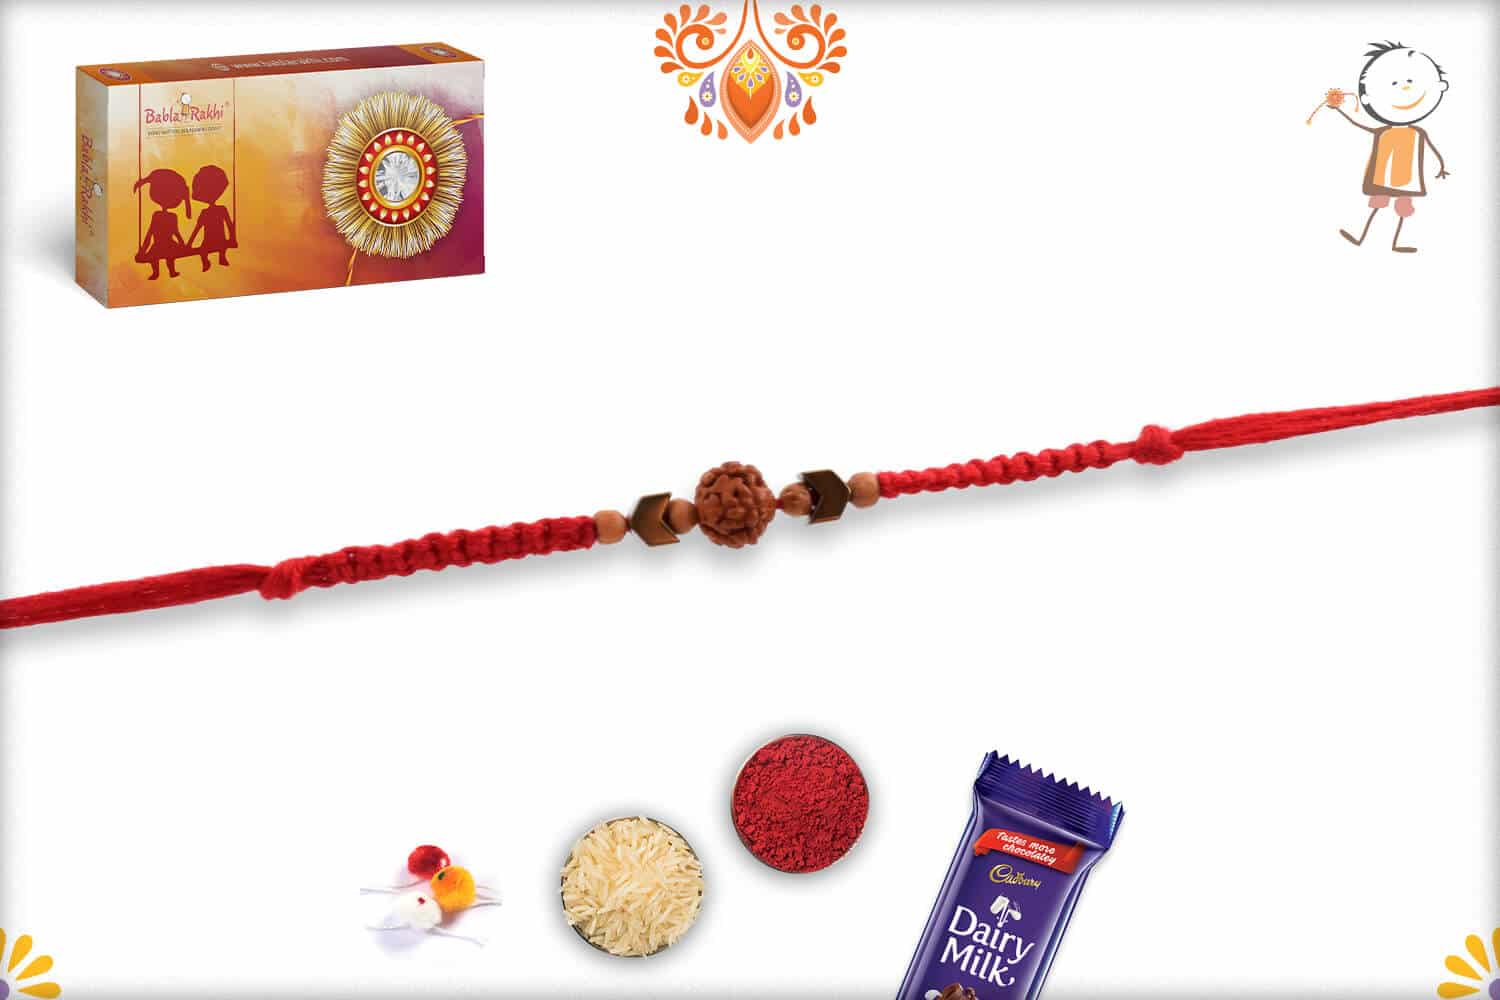 Uniquely Knotted Rudraksh Rakhi with Arrow Beads | Send Rakhi Gifts Online 2